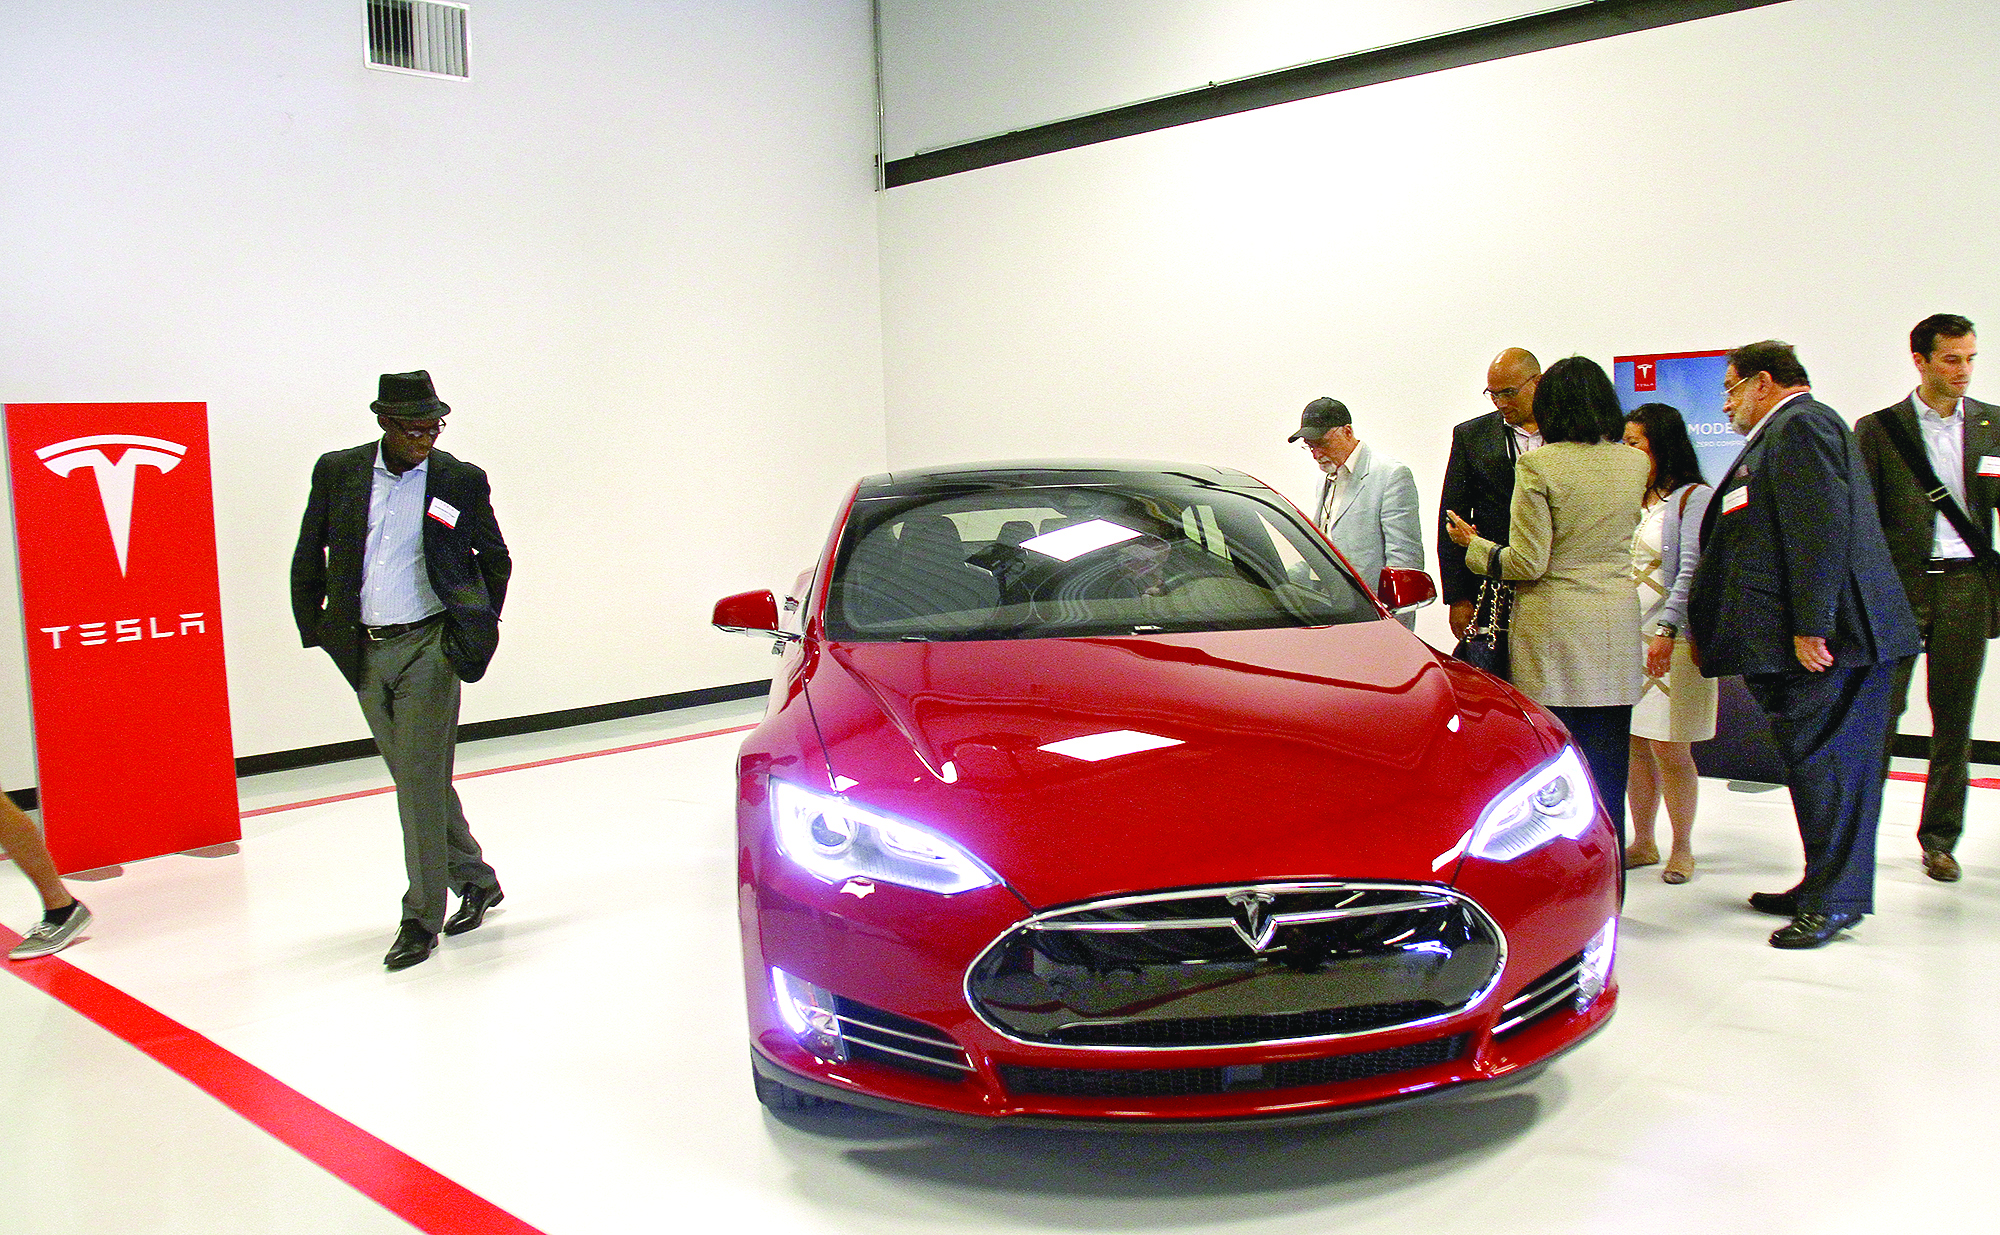 Babacar Diagne, ambassador to the Republic of Senegal, far left, along with ambassadors from Barbados, Grenada, Oman, Luxemborg and their staff   admire the Tesla cars in the company's showroom at its headquarters in Palo Alto on March 31, 2015, during a three-day technology tour ofSilicon Valley.  Photo by Veronica Weber.